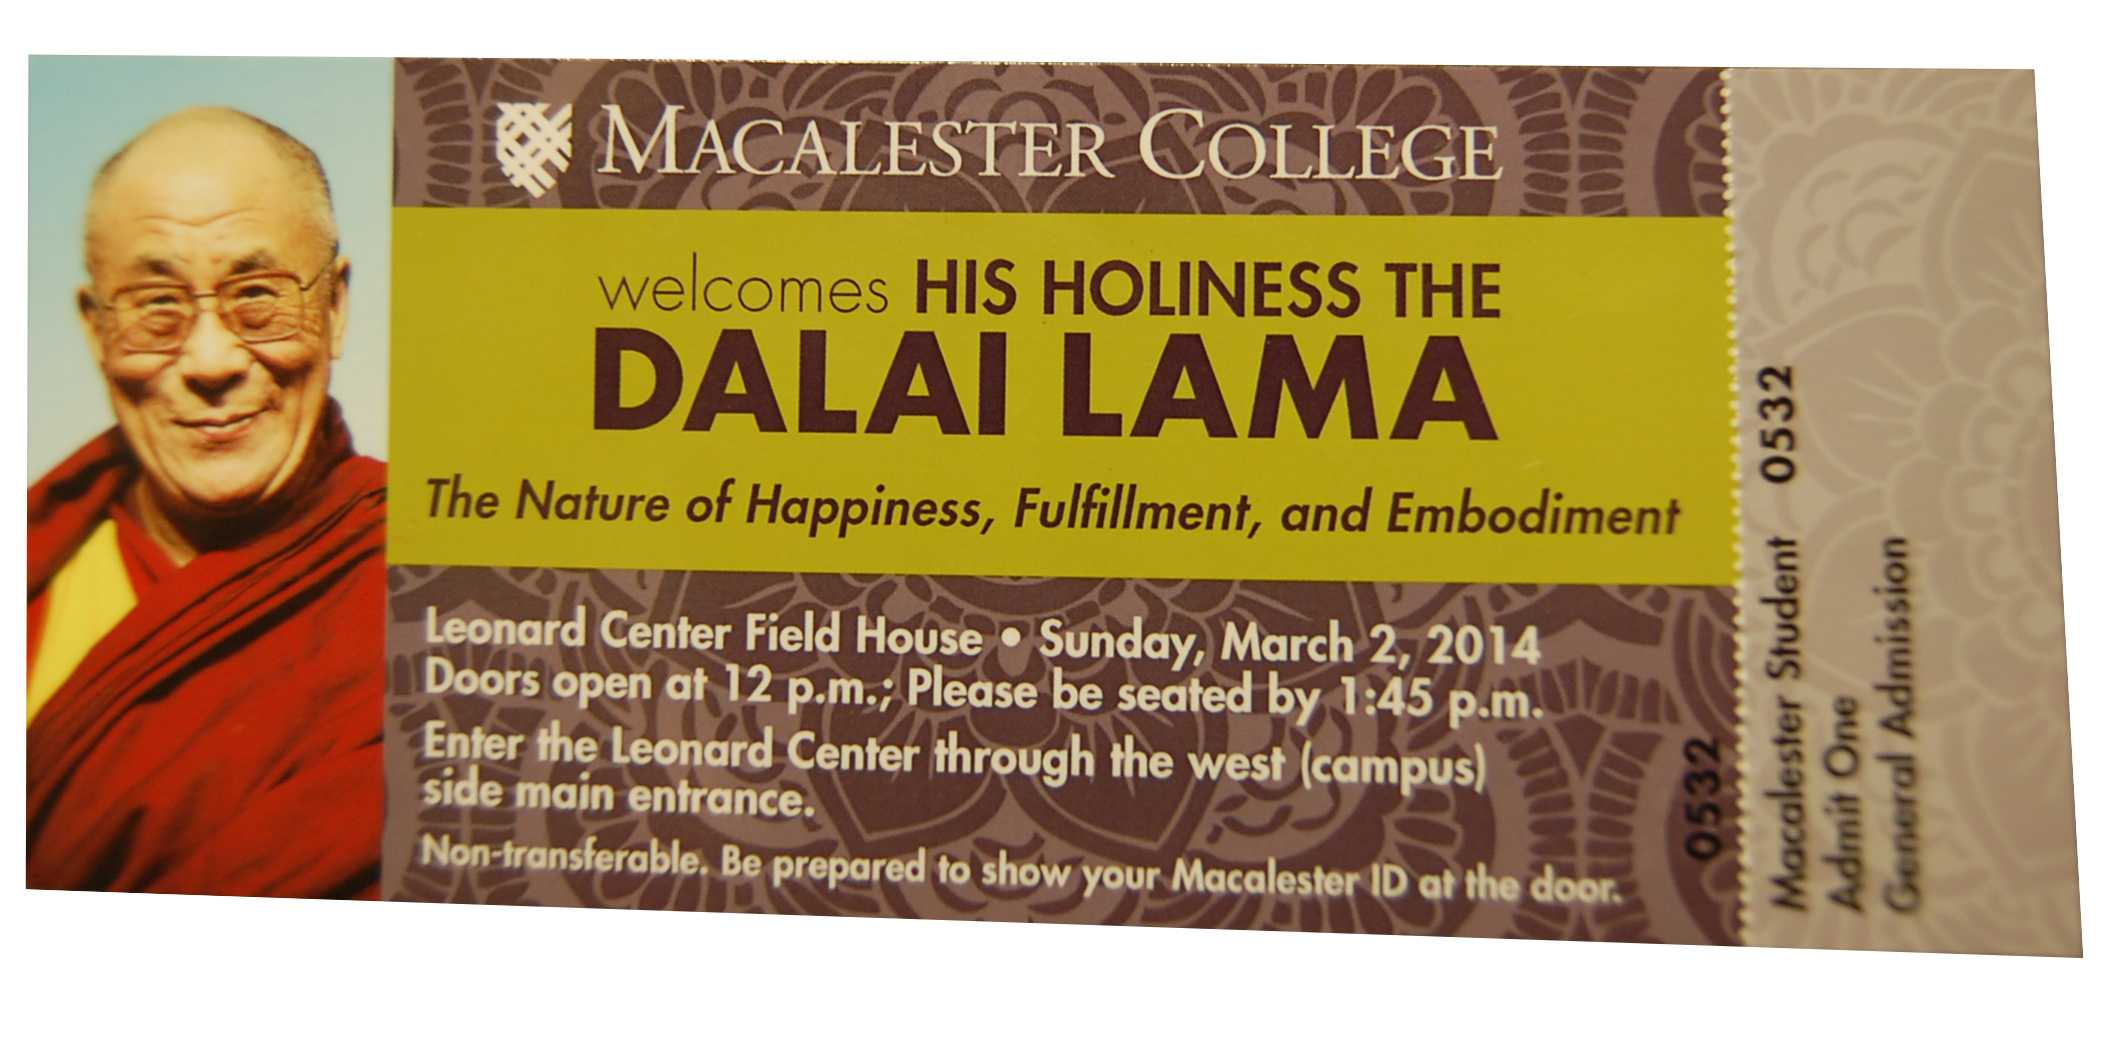 Students began receiving their tickets to the Dalai Lama's talk on this week. The Dalai Lama will speak at Macalester on Sunday, March 2.